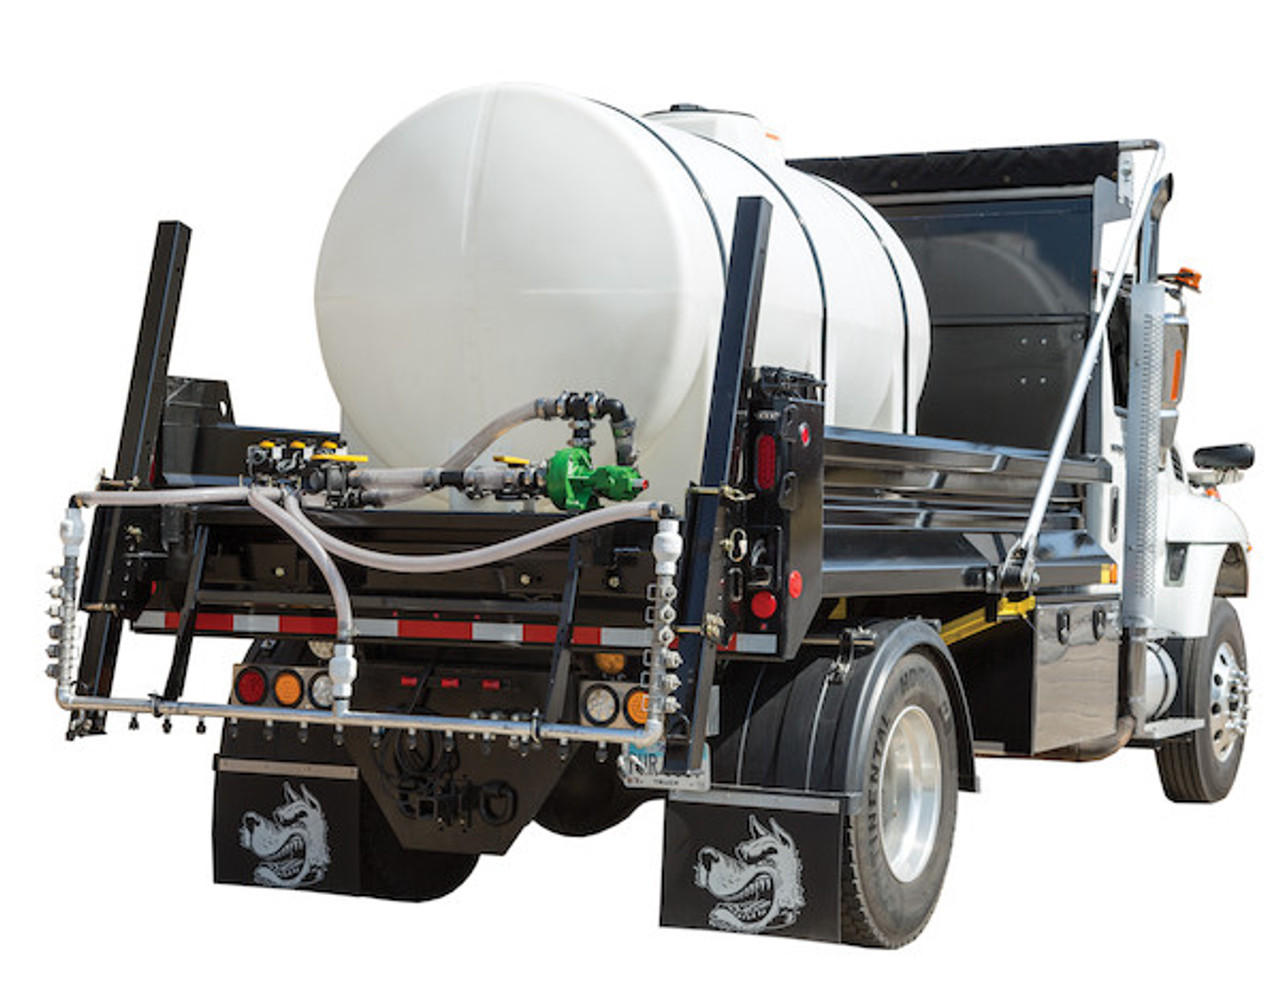 6192731 BUYERS SALTDOGG 1750 Gallon Hydraulic Anti-Ice System With One-Lane Spray Bar And Automatic Application Rate Control